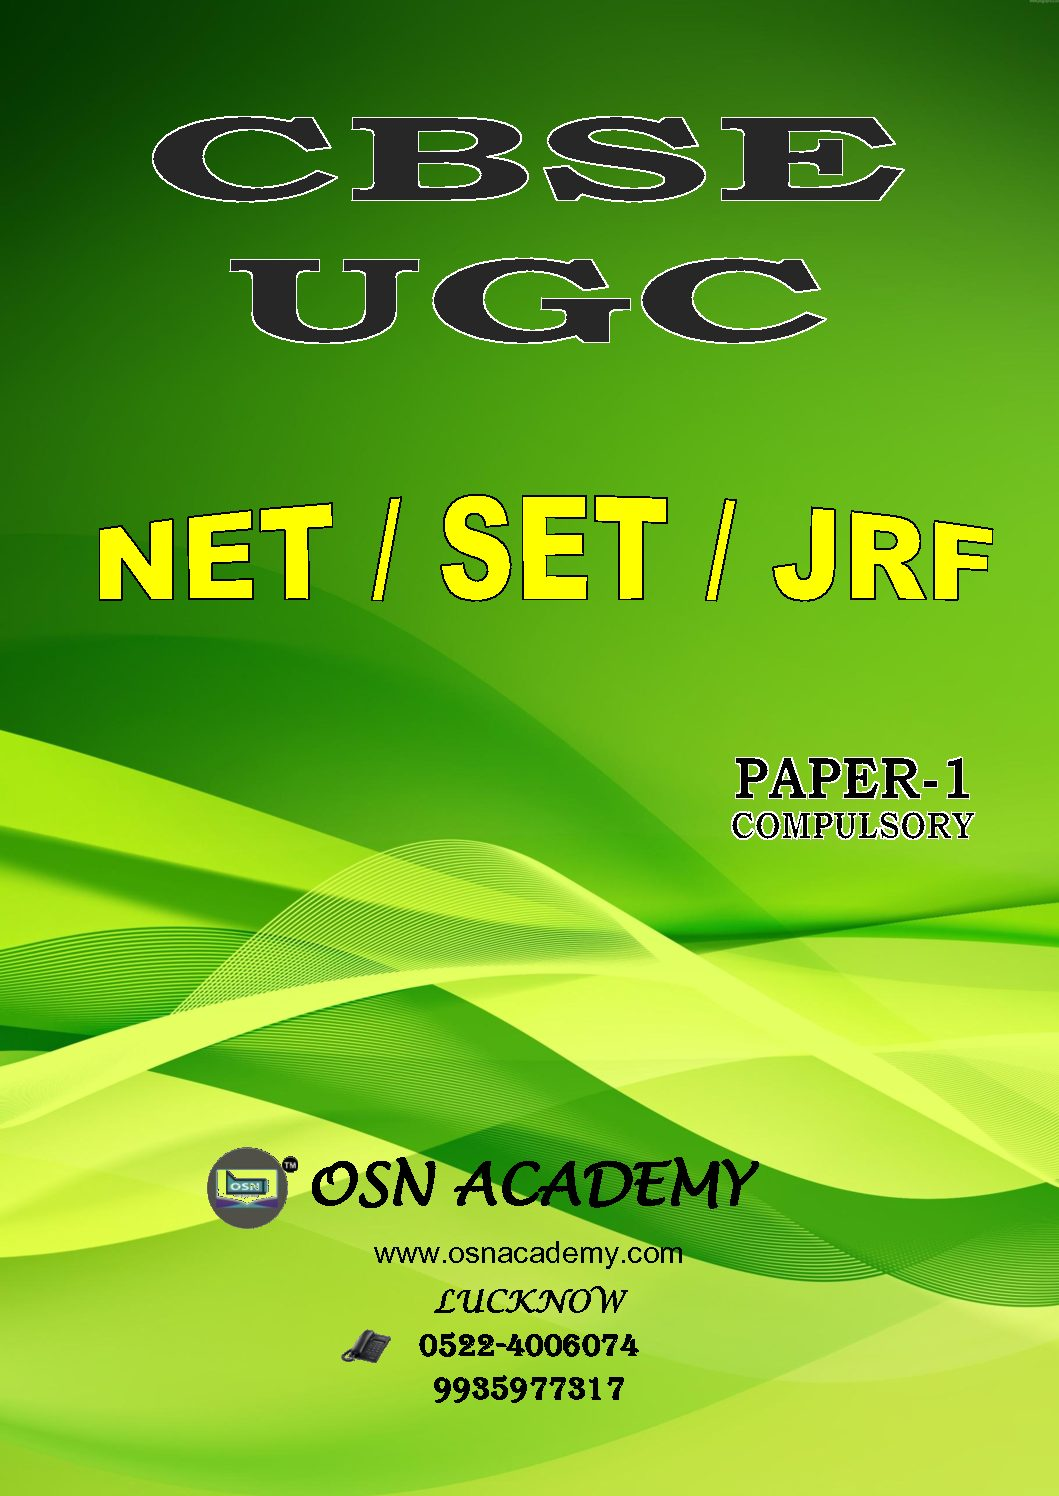 UGC NET PAPER – 01 Complete Study material download